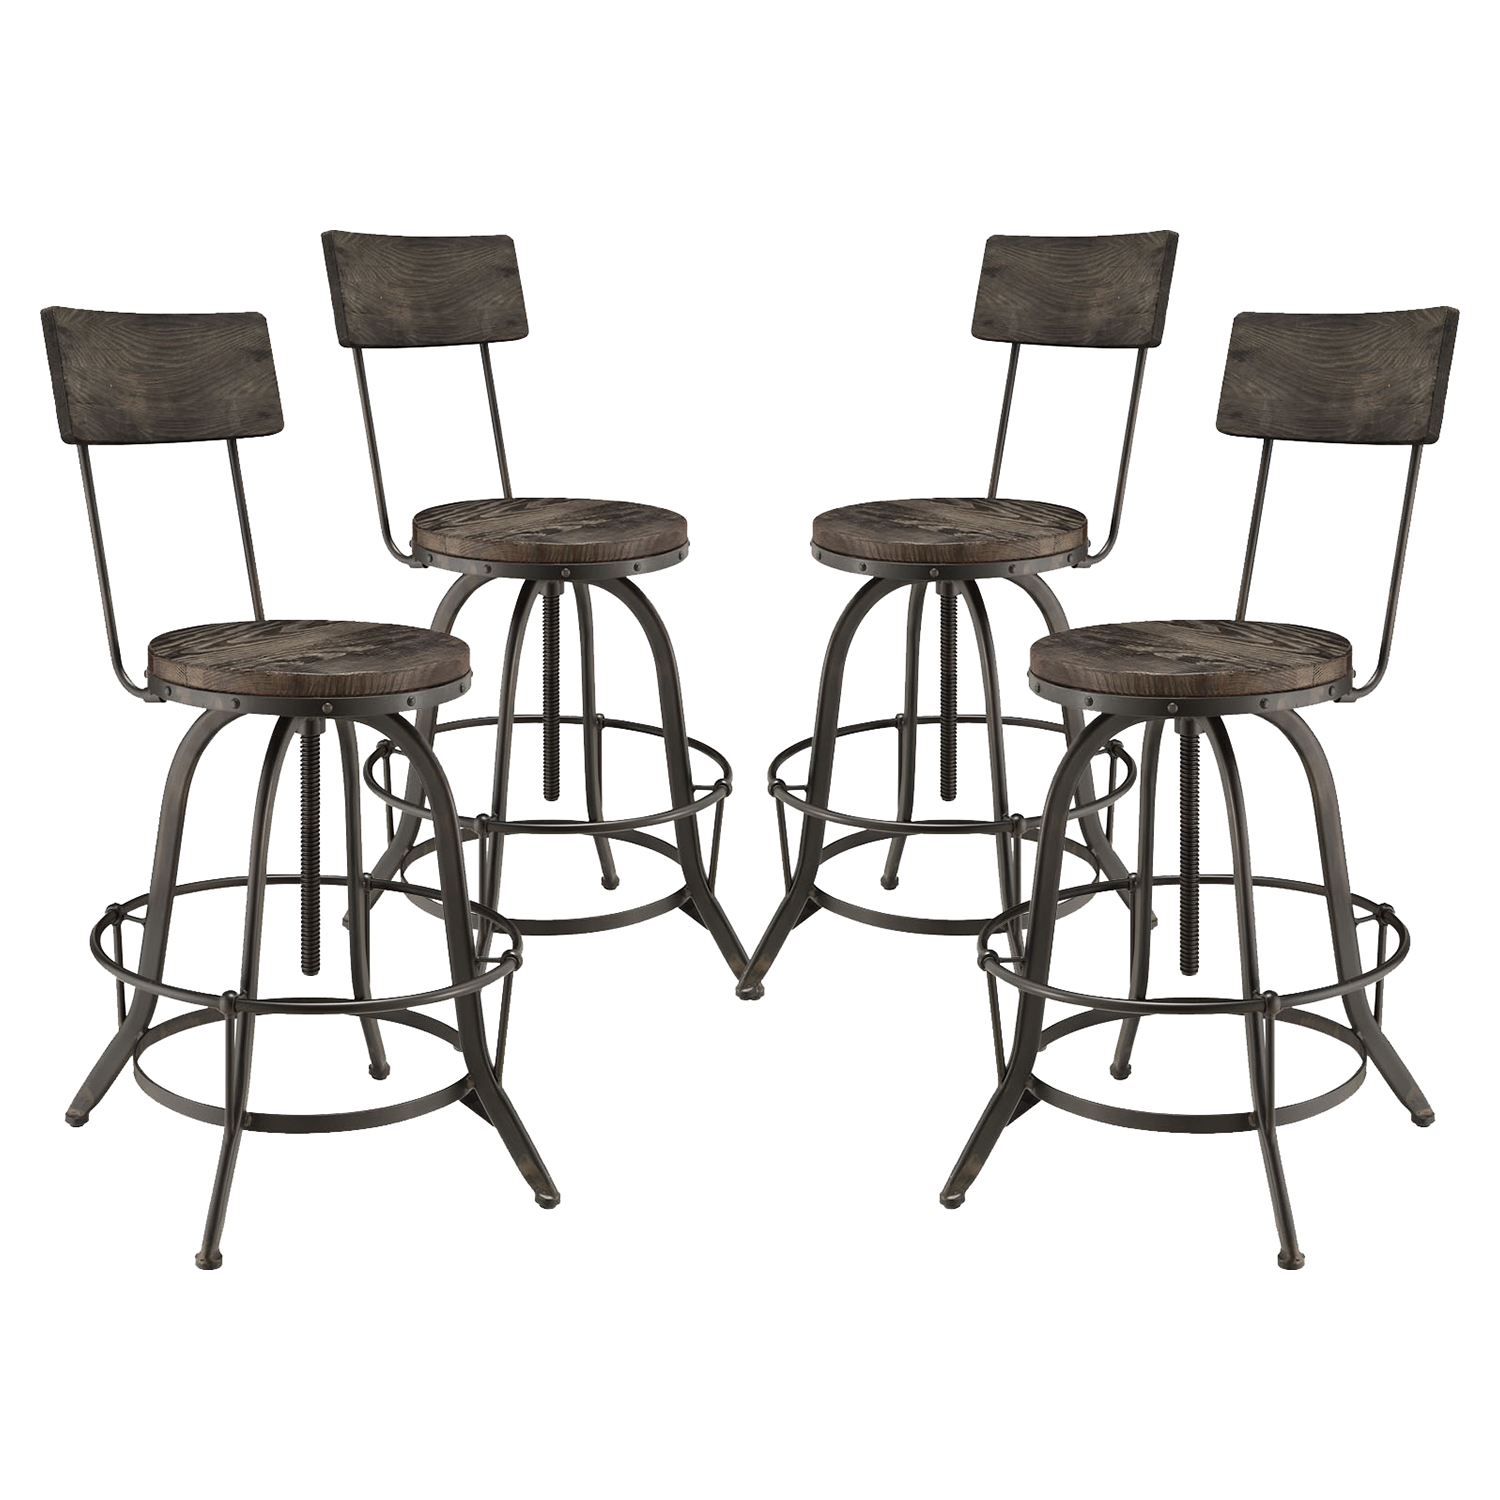 Procure Backrest Bar Stool - Metal Base, Black (Set of 4) - EEI-1609-BLK-SET